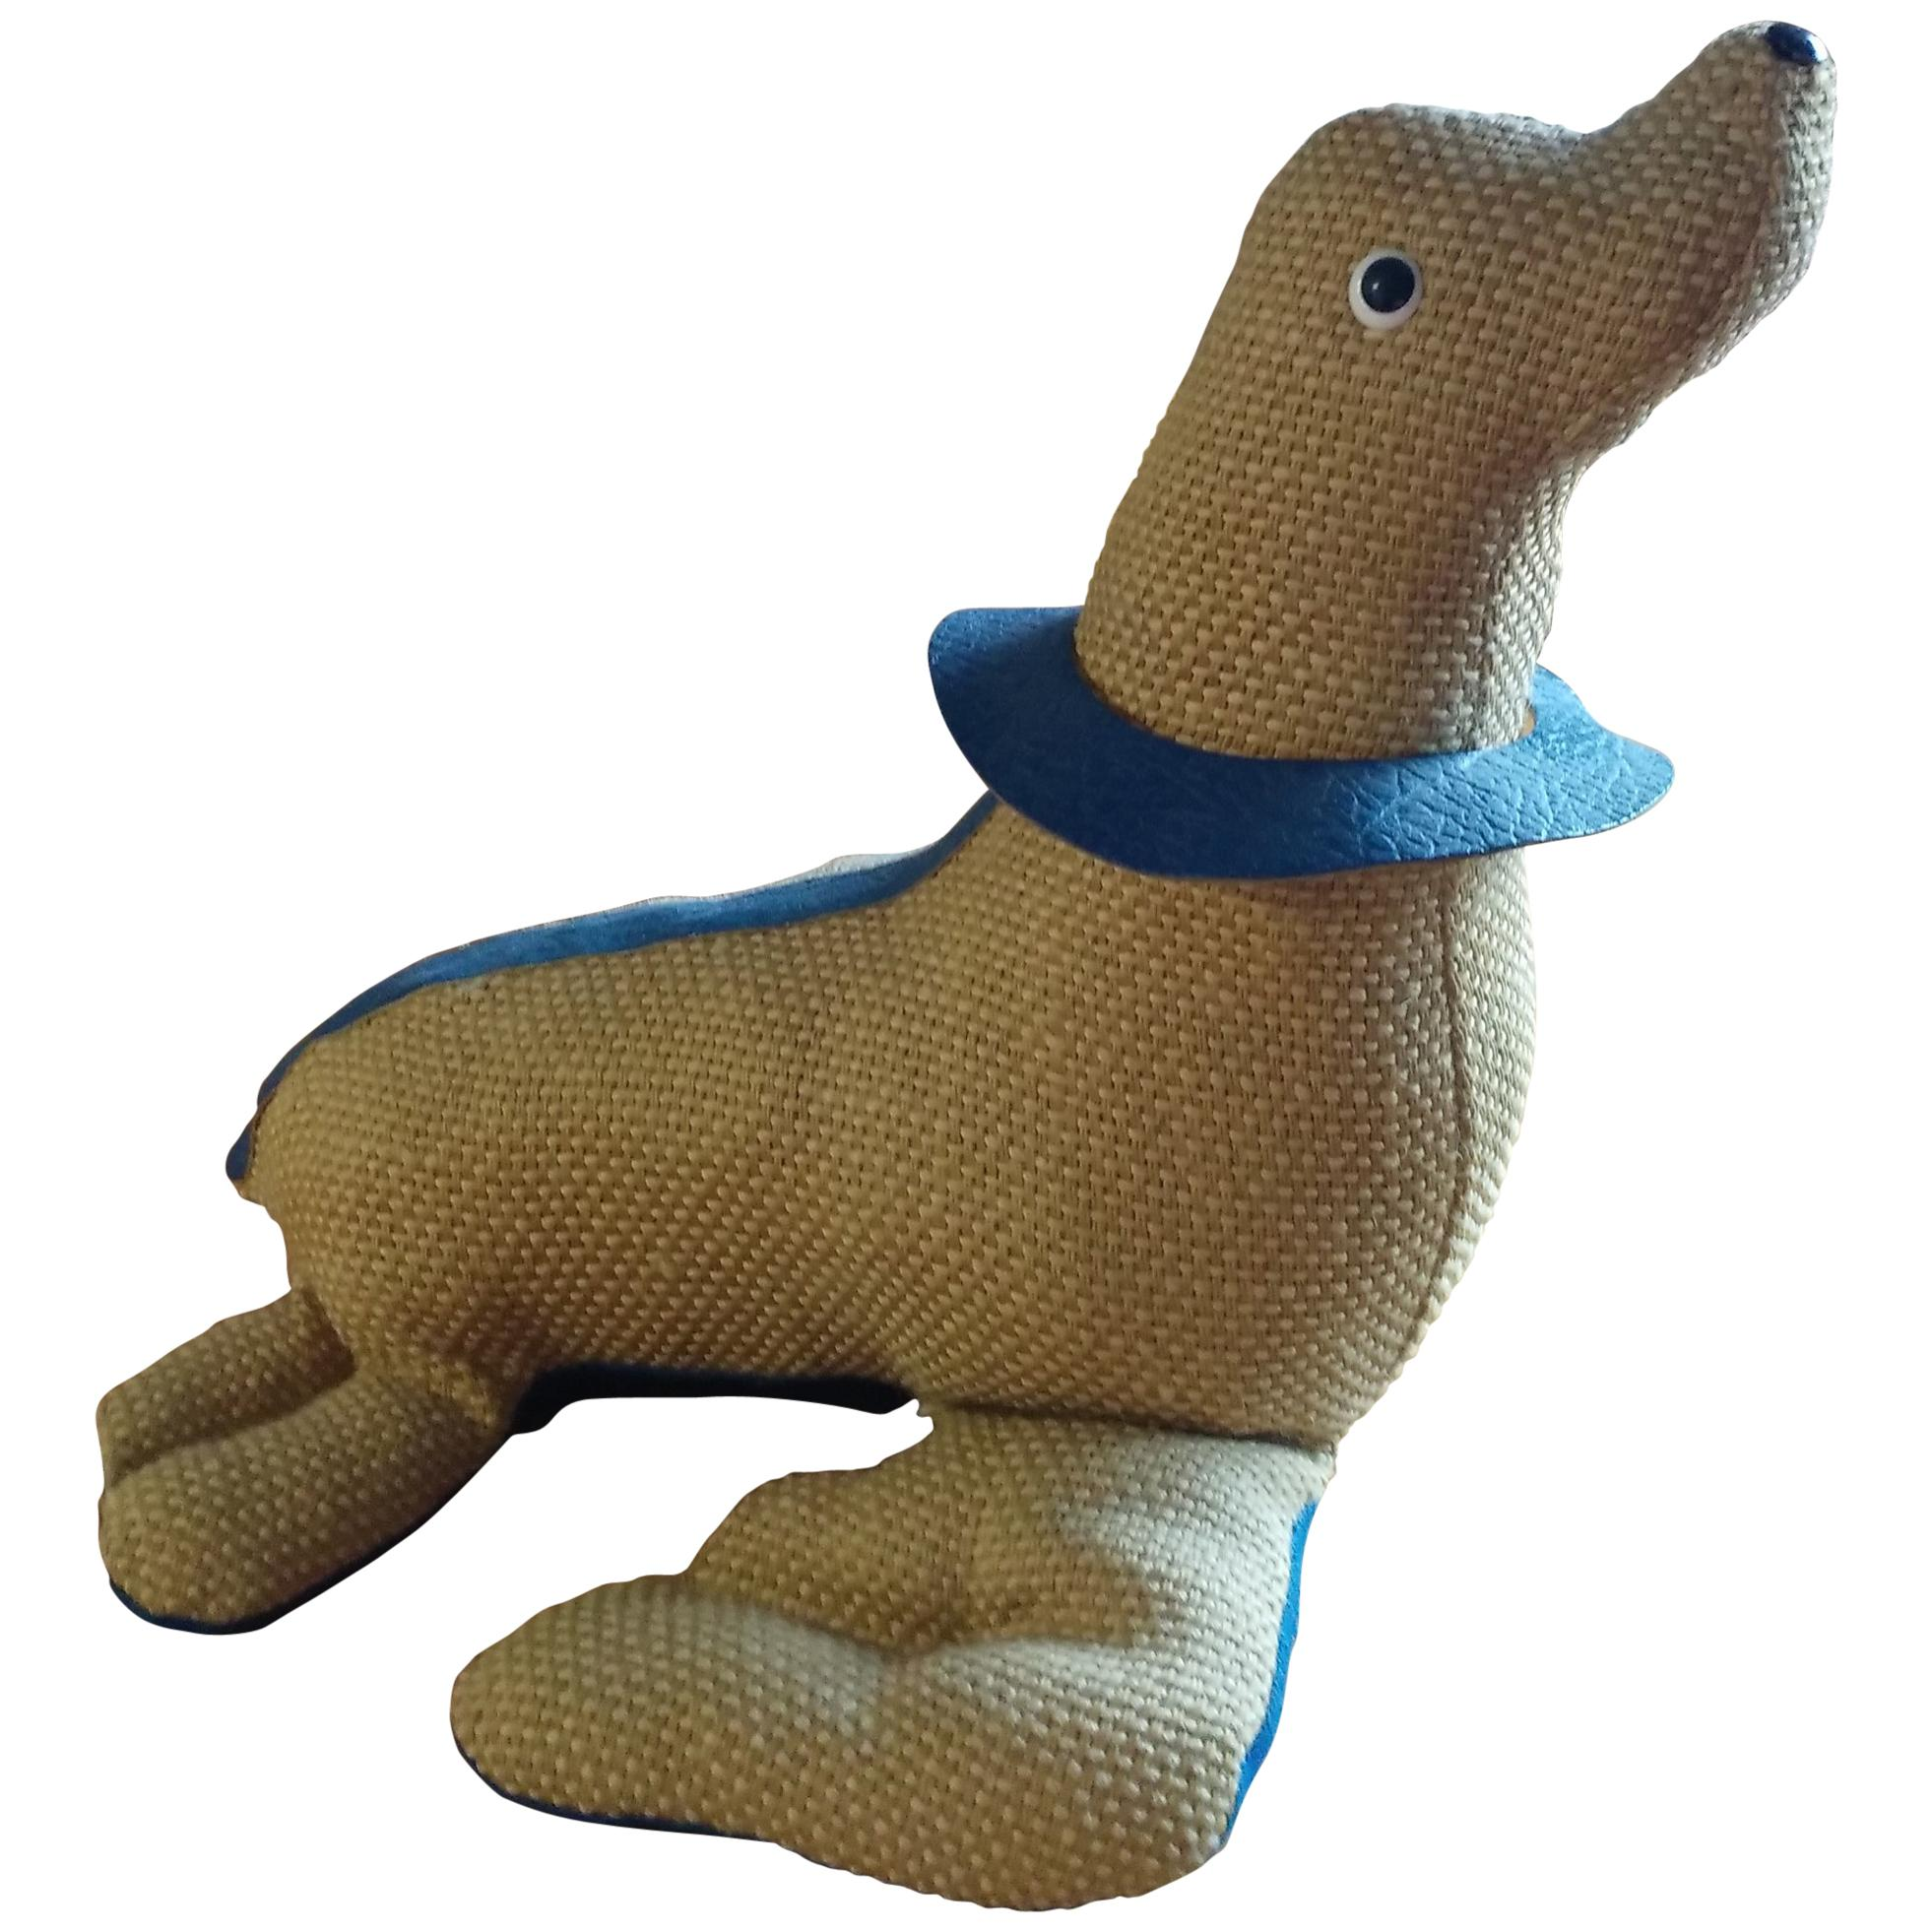 Therapeutic Seal Toy in Jute with Leather by Renate Müller, circa 1965